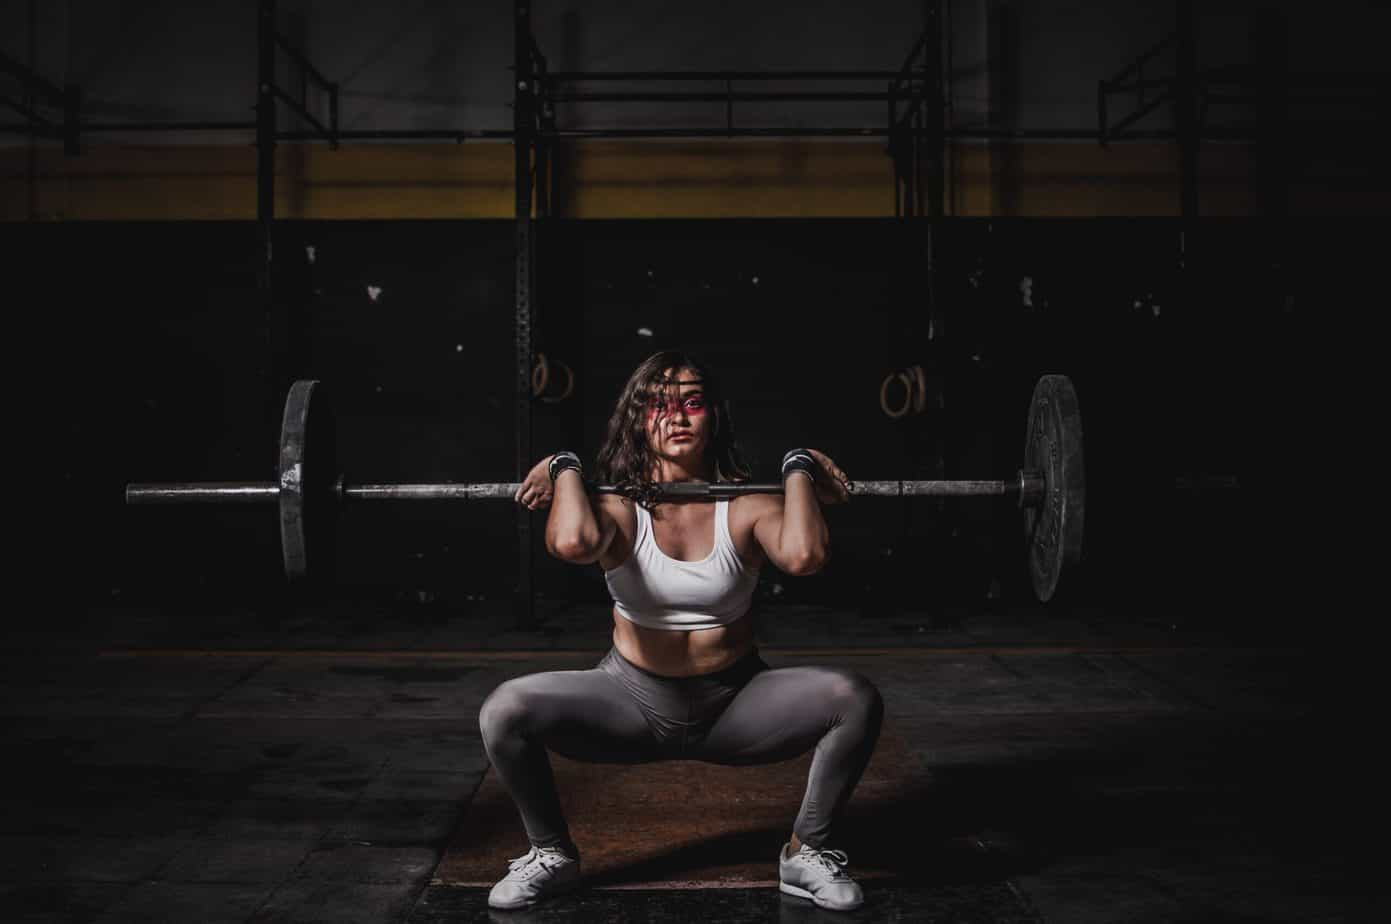 A woman wearing a gray leggings while squatting